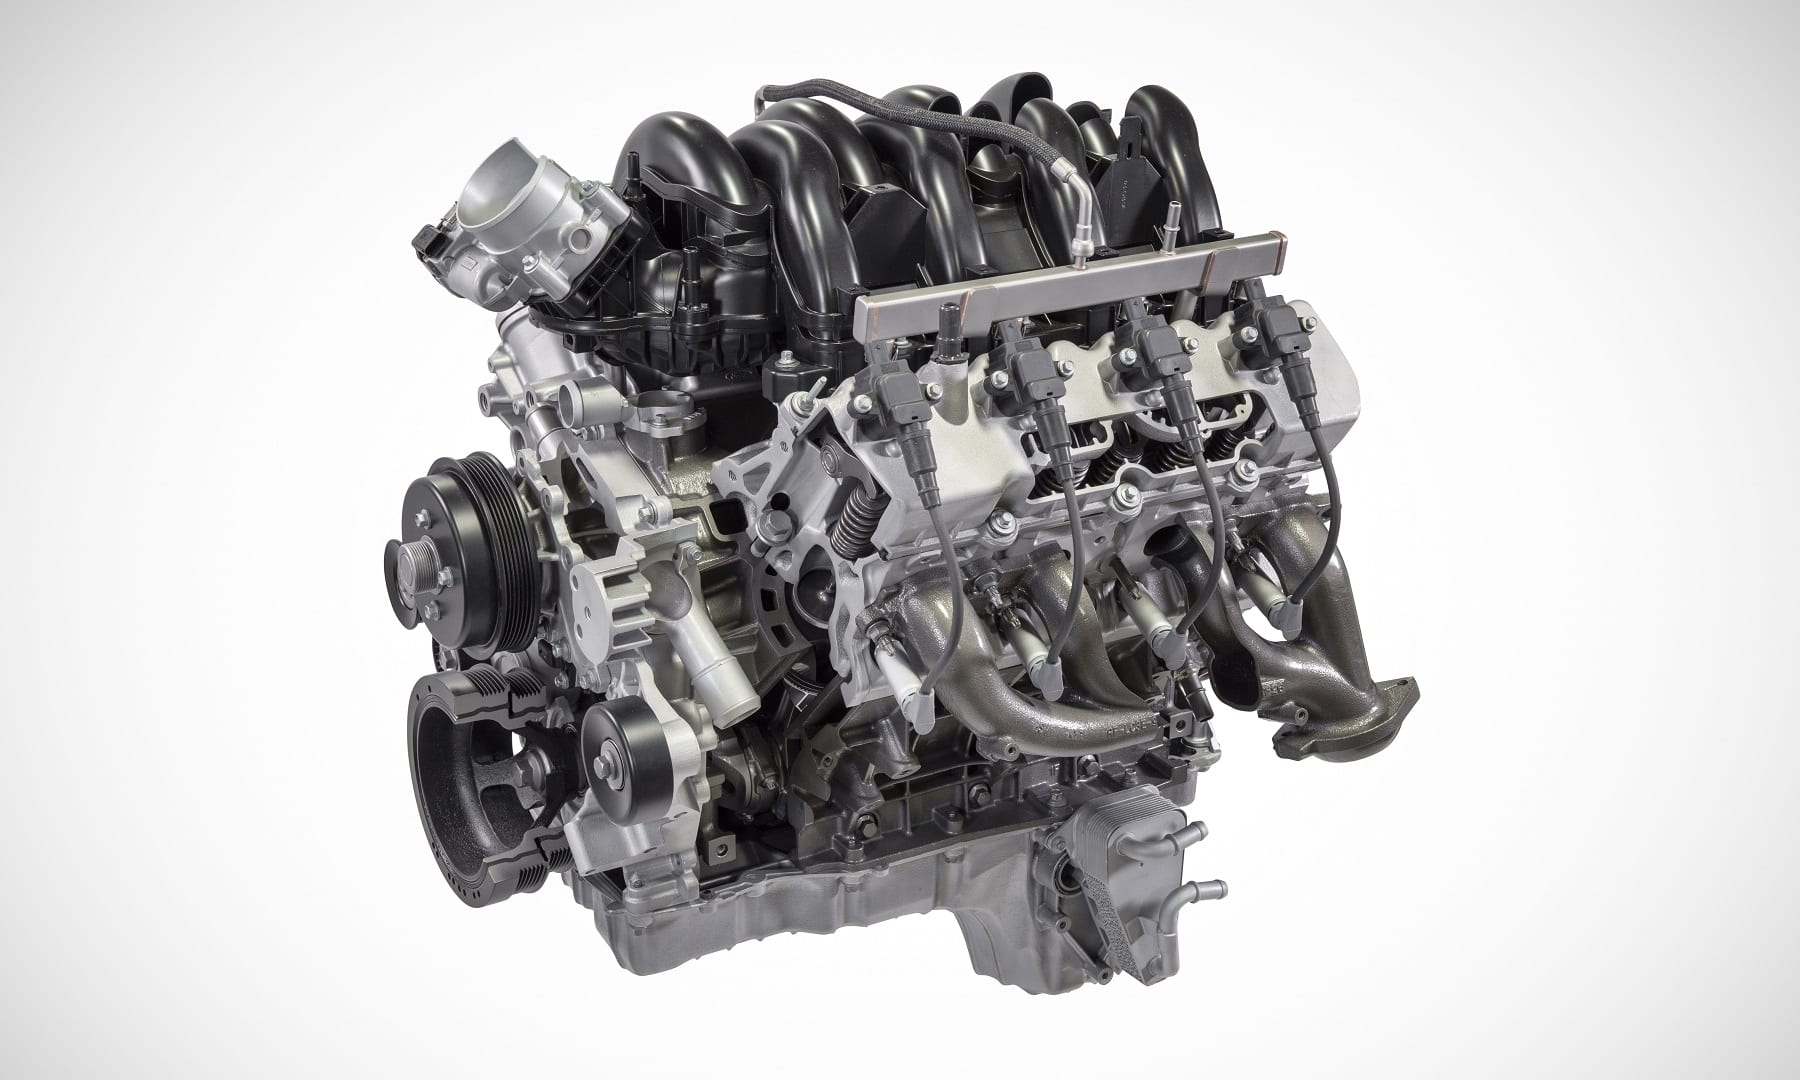 The 7.3-liter engine is paired with the all-new 10-speed heavy-duty TorqShift® transmission on Super Duty pickups and is designed for robust power, long-term durability and ease of service that truck owners demand in both personal and business applications